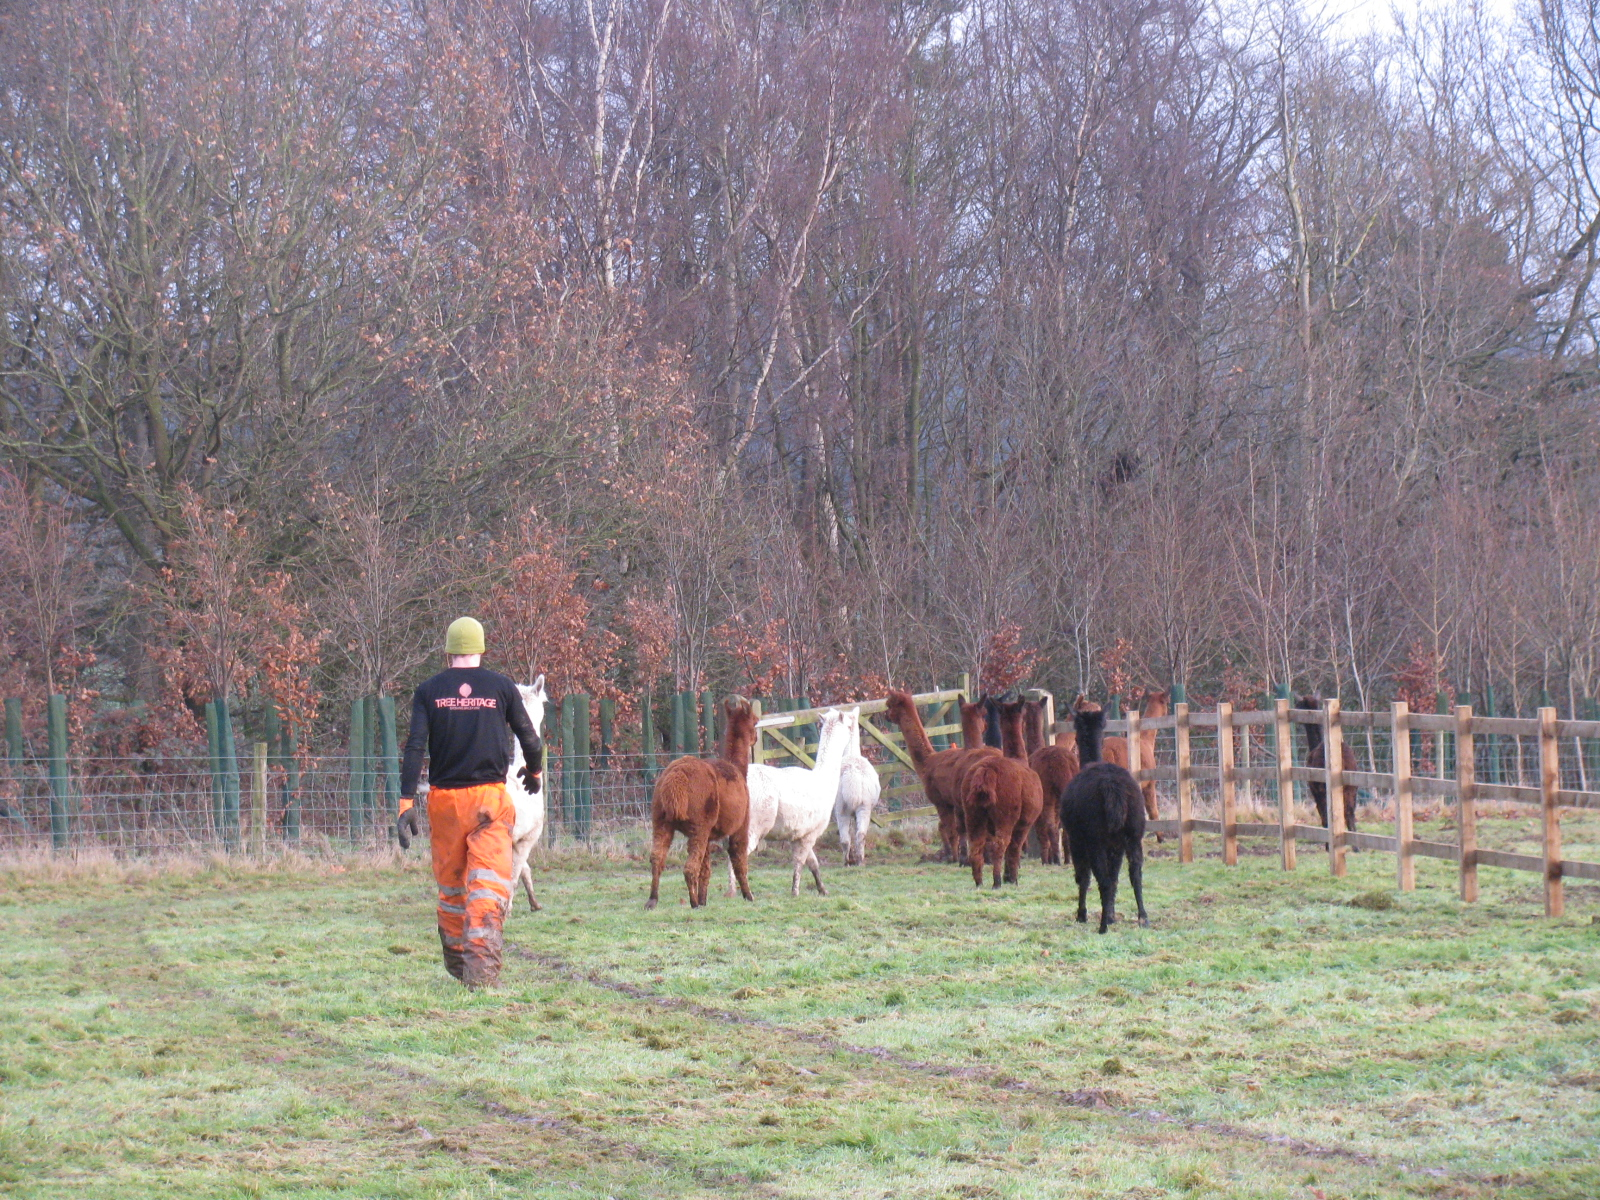 tree-surgeon-herds-llamas-out-of-tree-planting-area